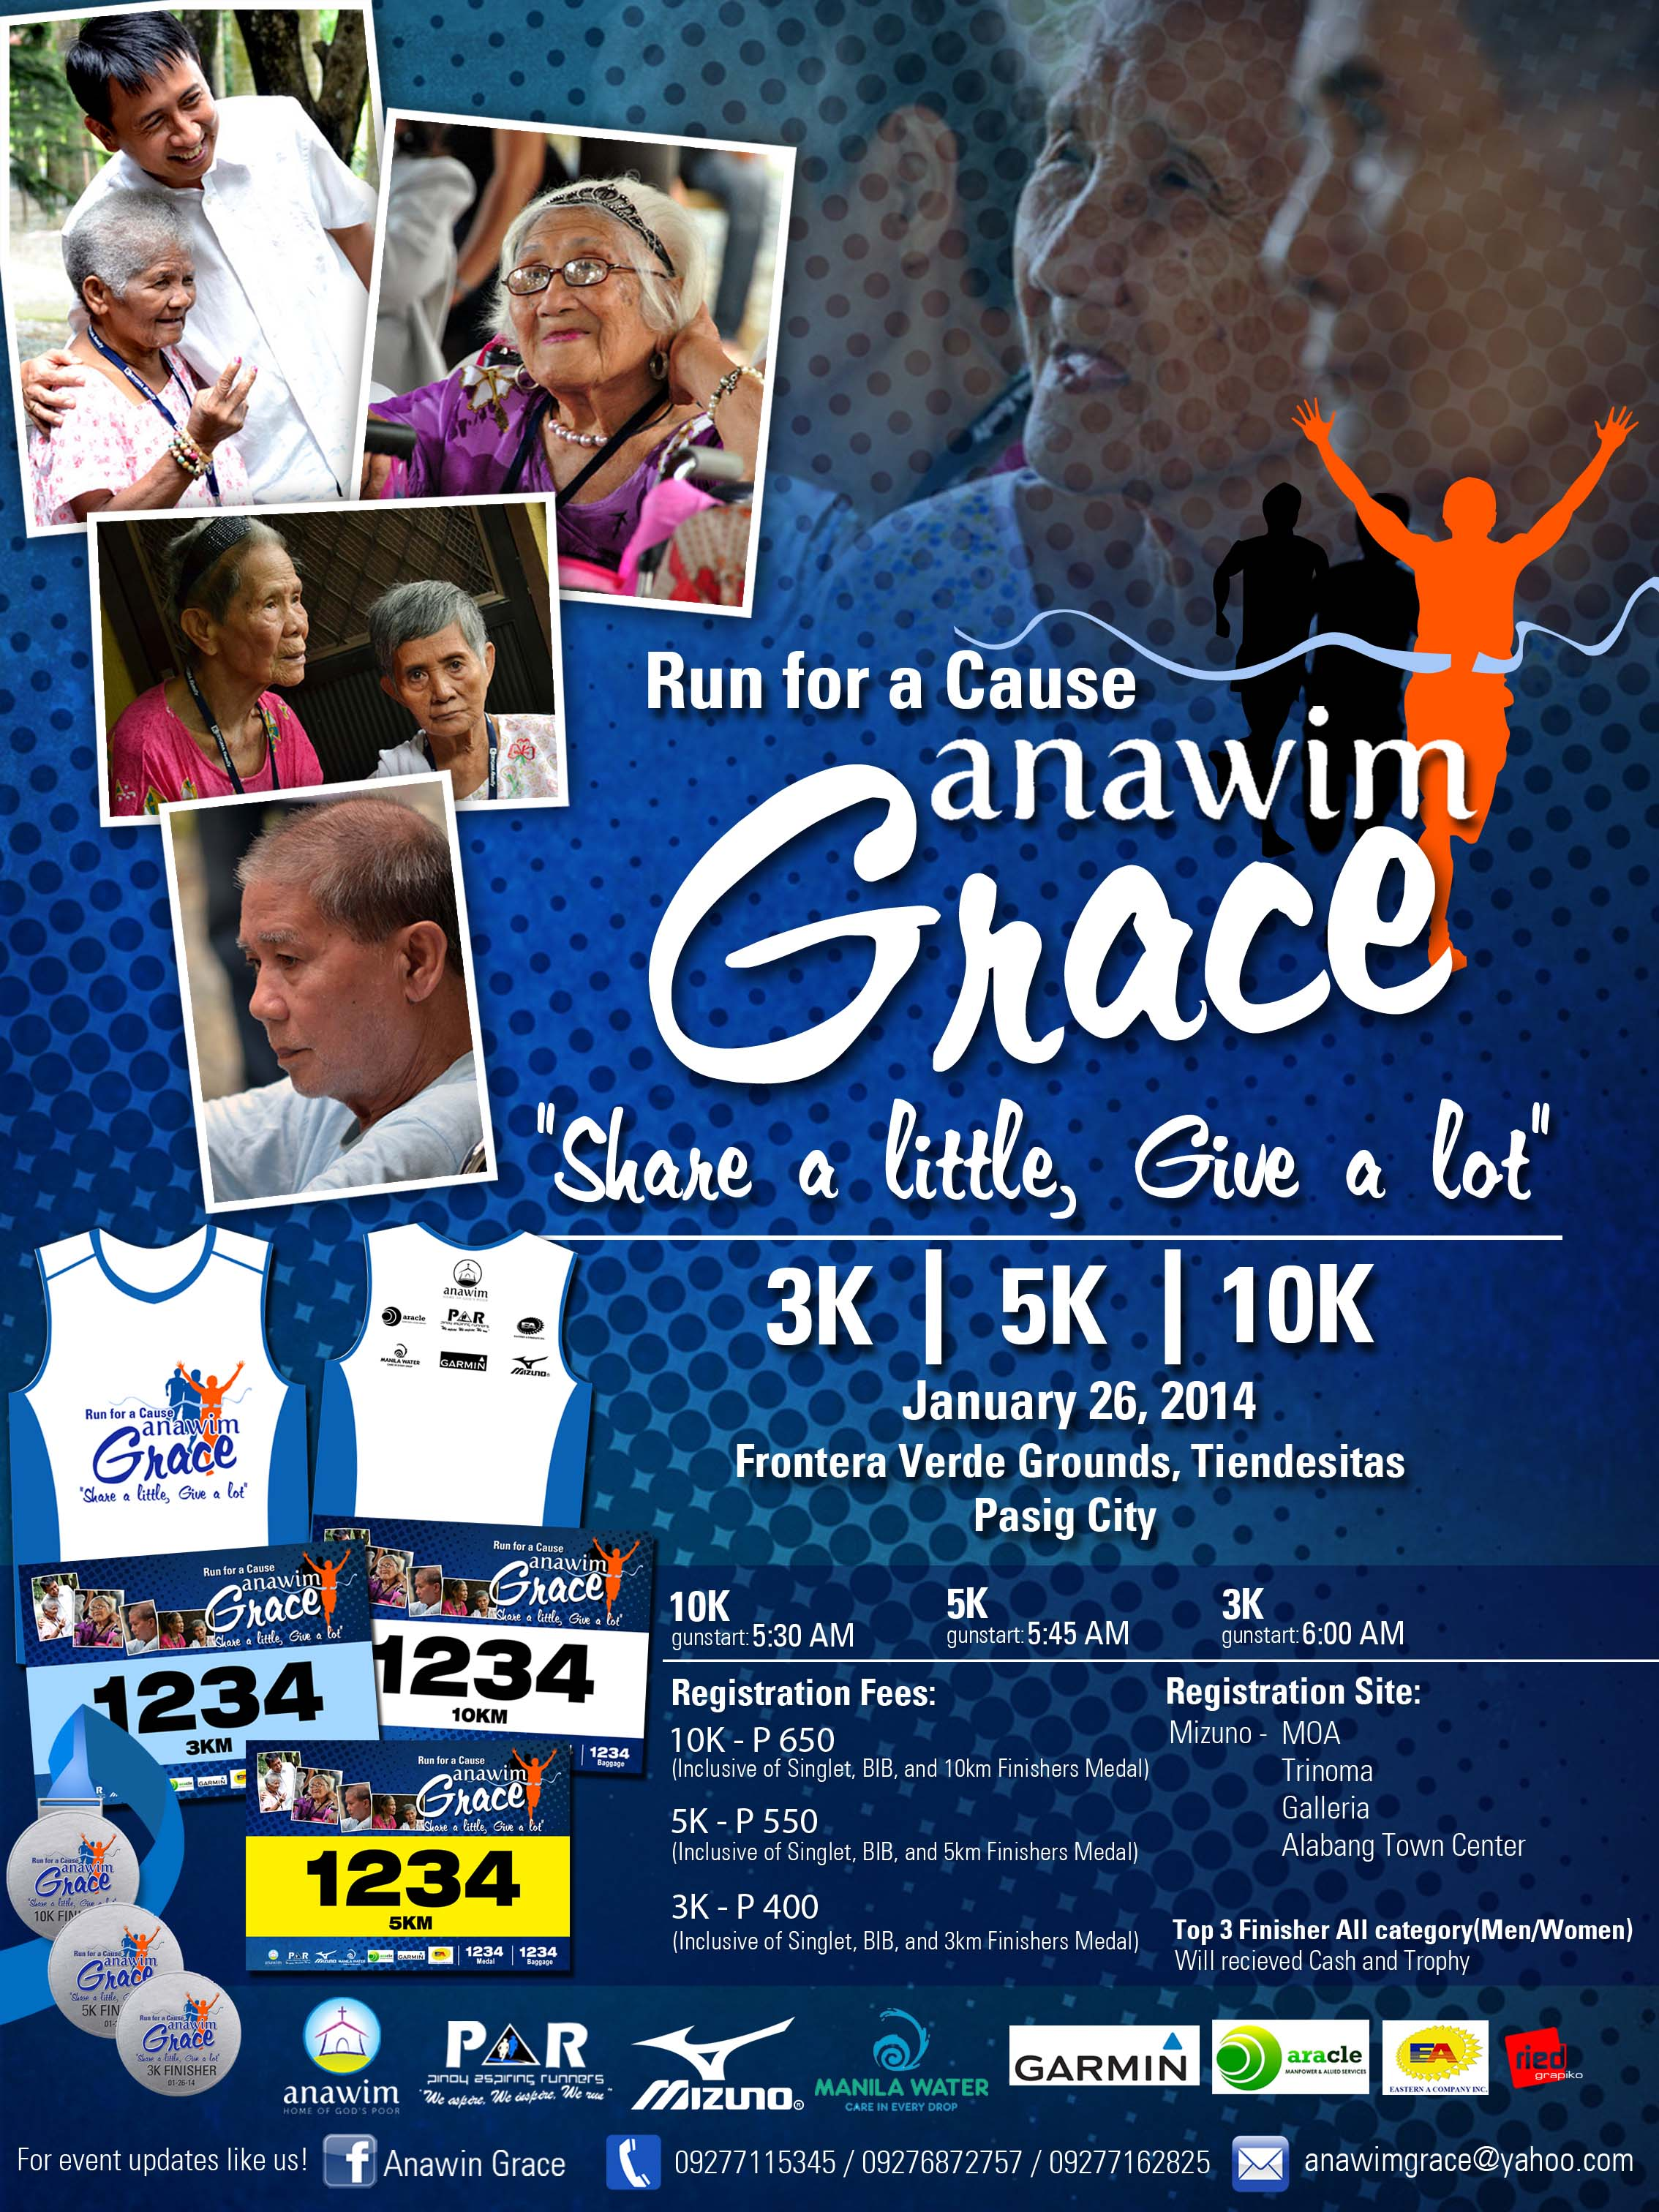 share-a-little-give-a-lot-fun-run-2014-poster